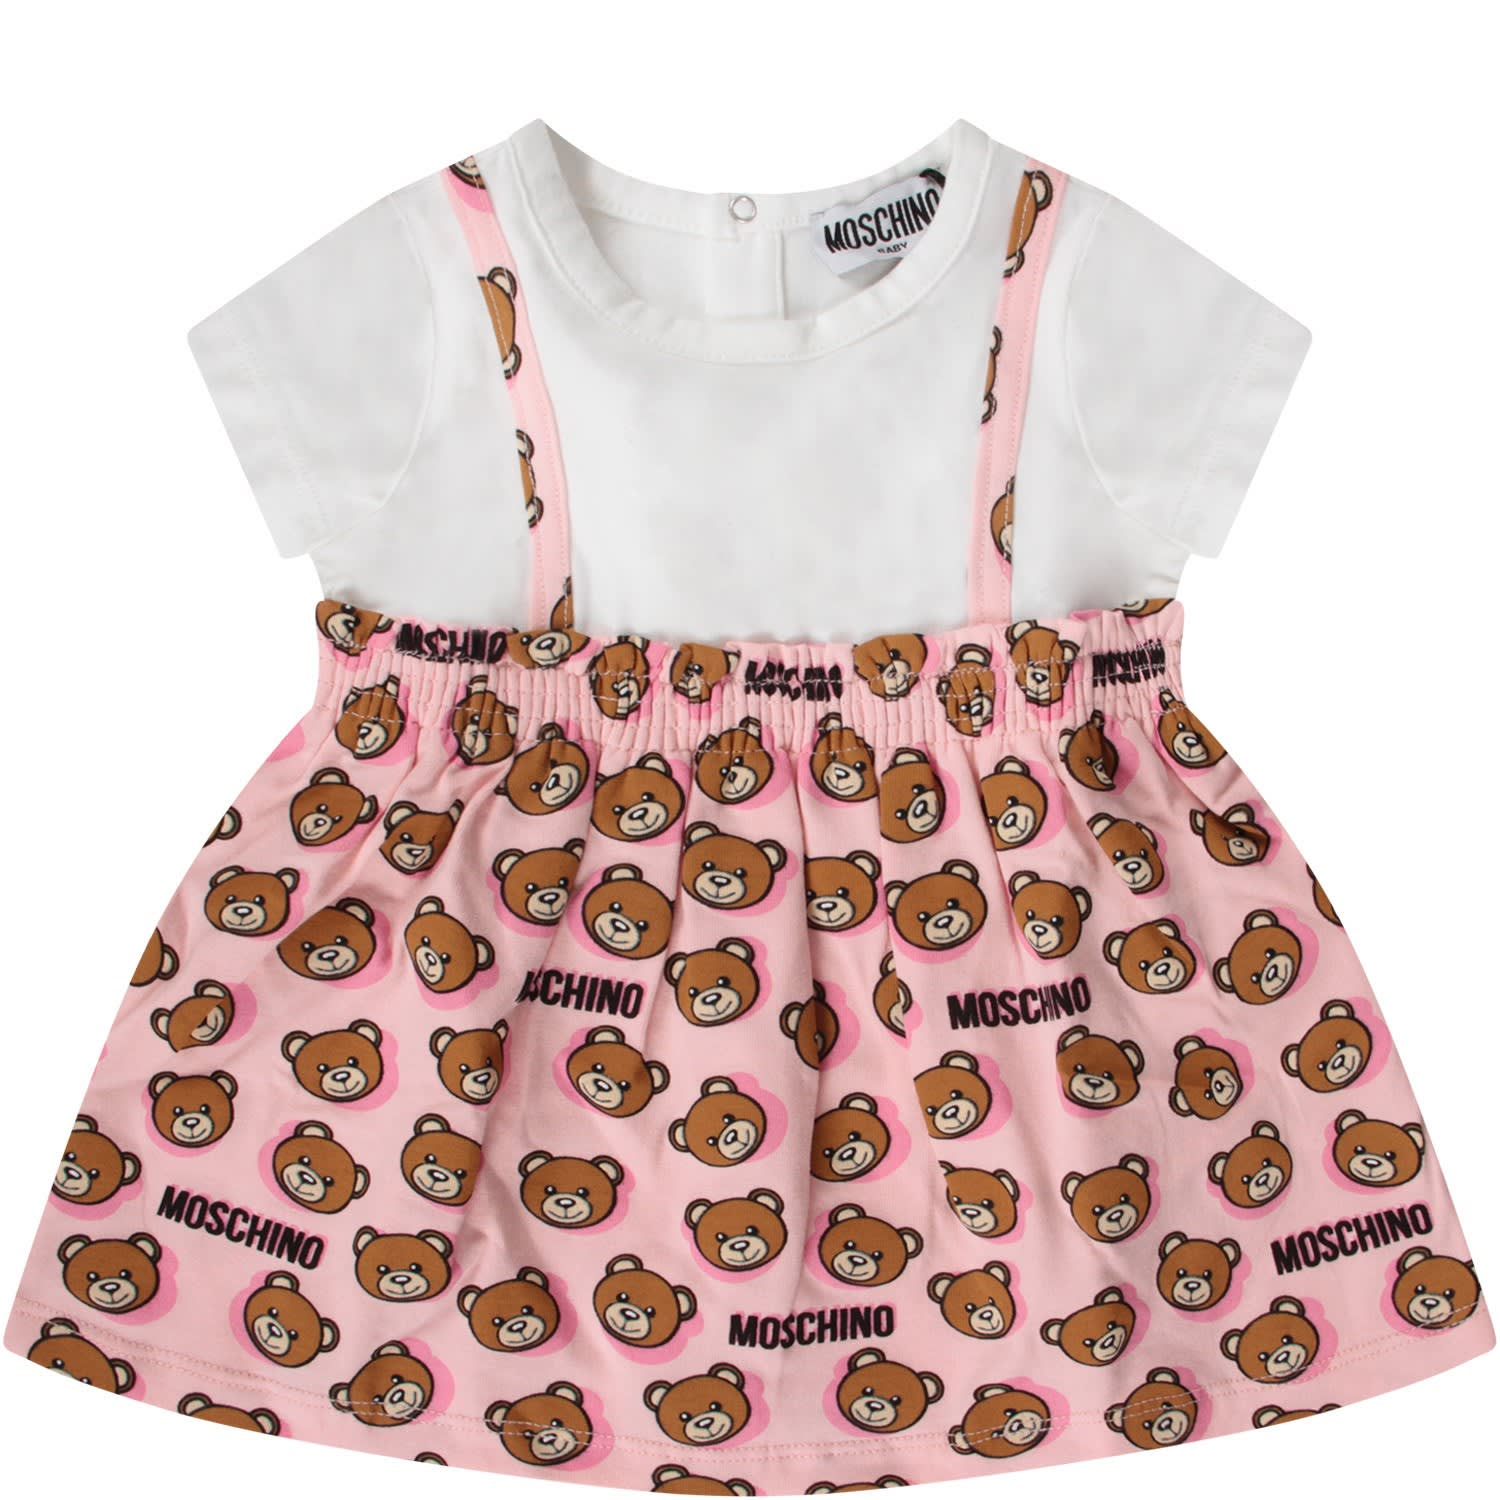 Buy Moschino White And Pink Babygirl Dress With Teddy Bears online, shop Moschino with free shipping